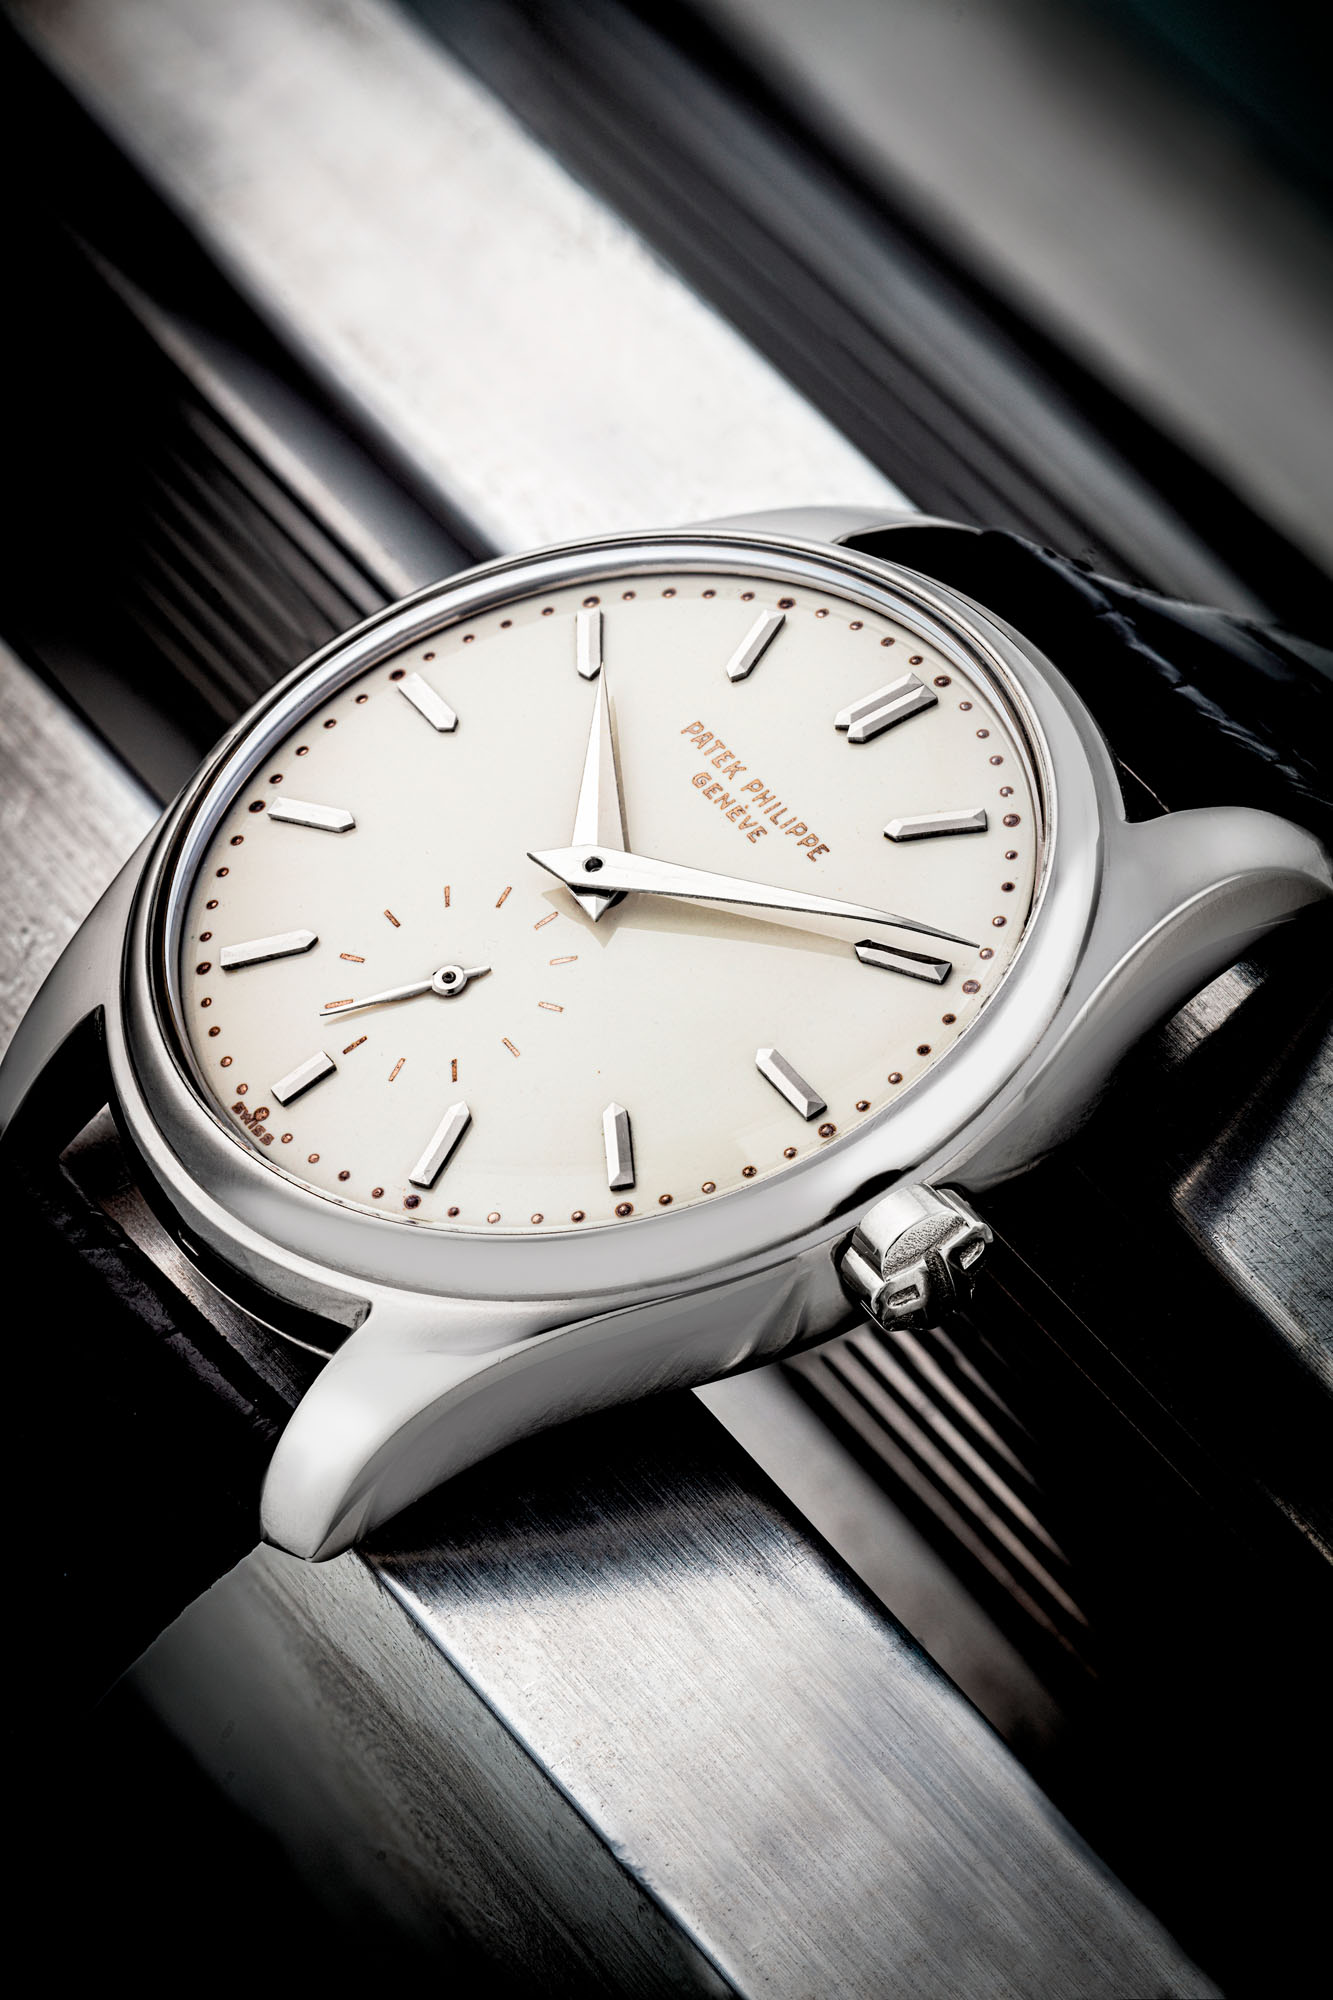 PATEK PHILIPPE. AN EXTREMELY RARE AND HIGHLY ATTRACTIVE 18K WHITE GOLD AUTOMATIC WRISTWATCH WITH ENAMEL DIAL, REF. 2526, MANUFACTURED IN 1958